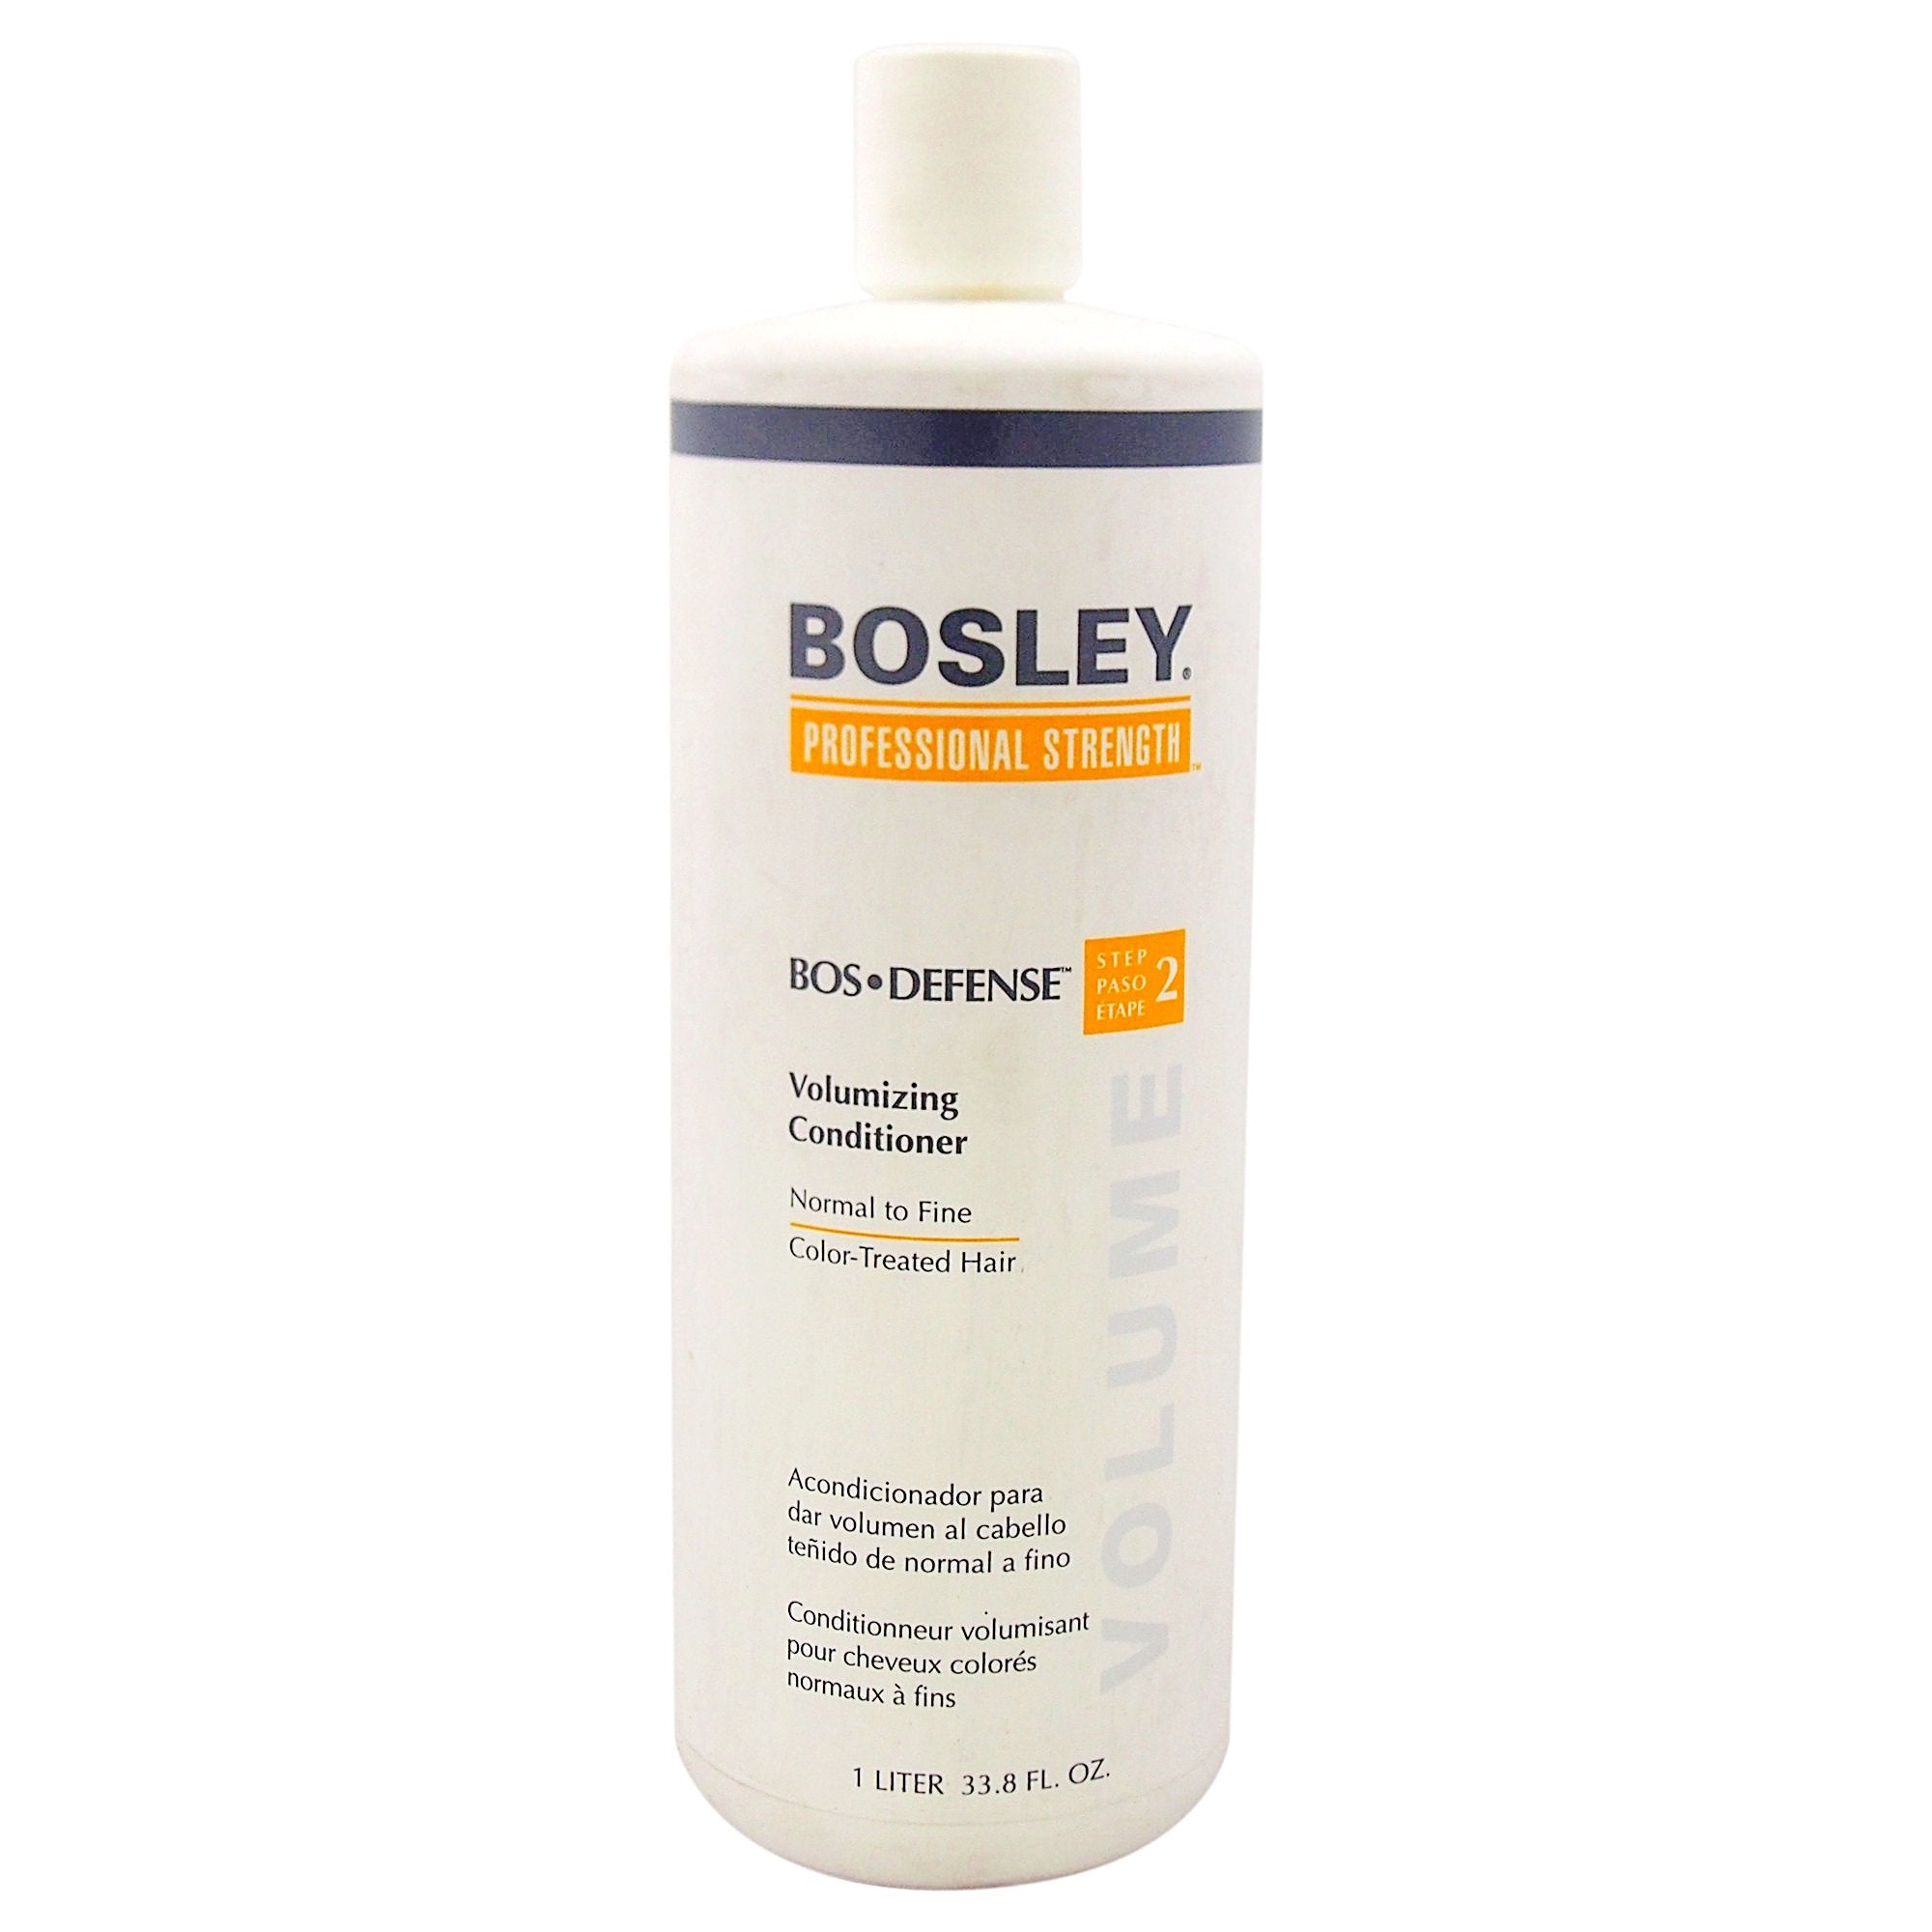 Bosley Bos Defense Volumizing Conditioner for Normal To Fine Color Treated Hair